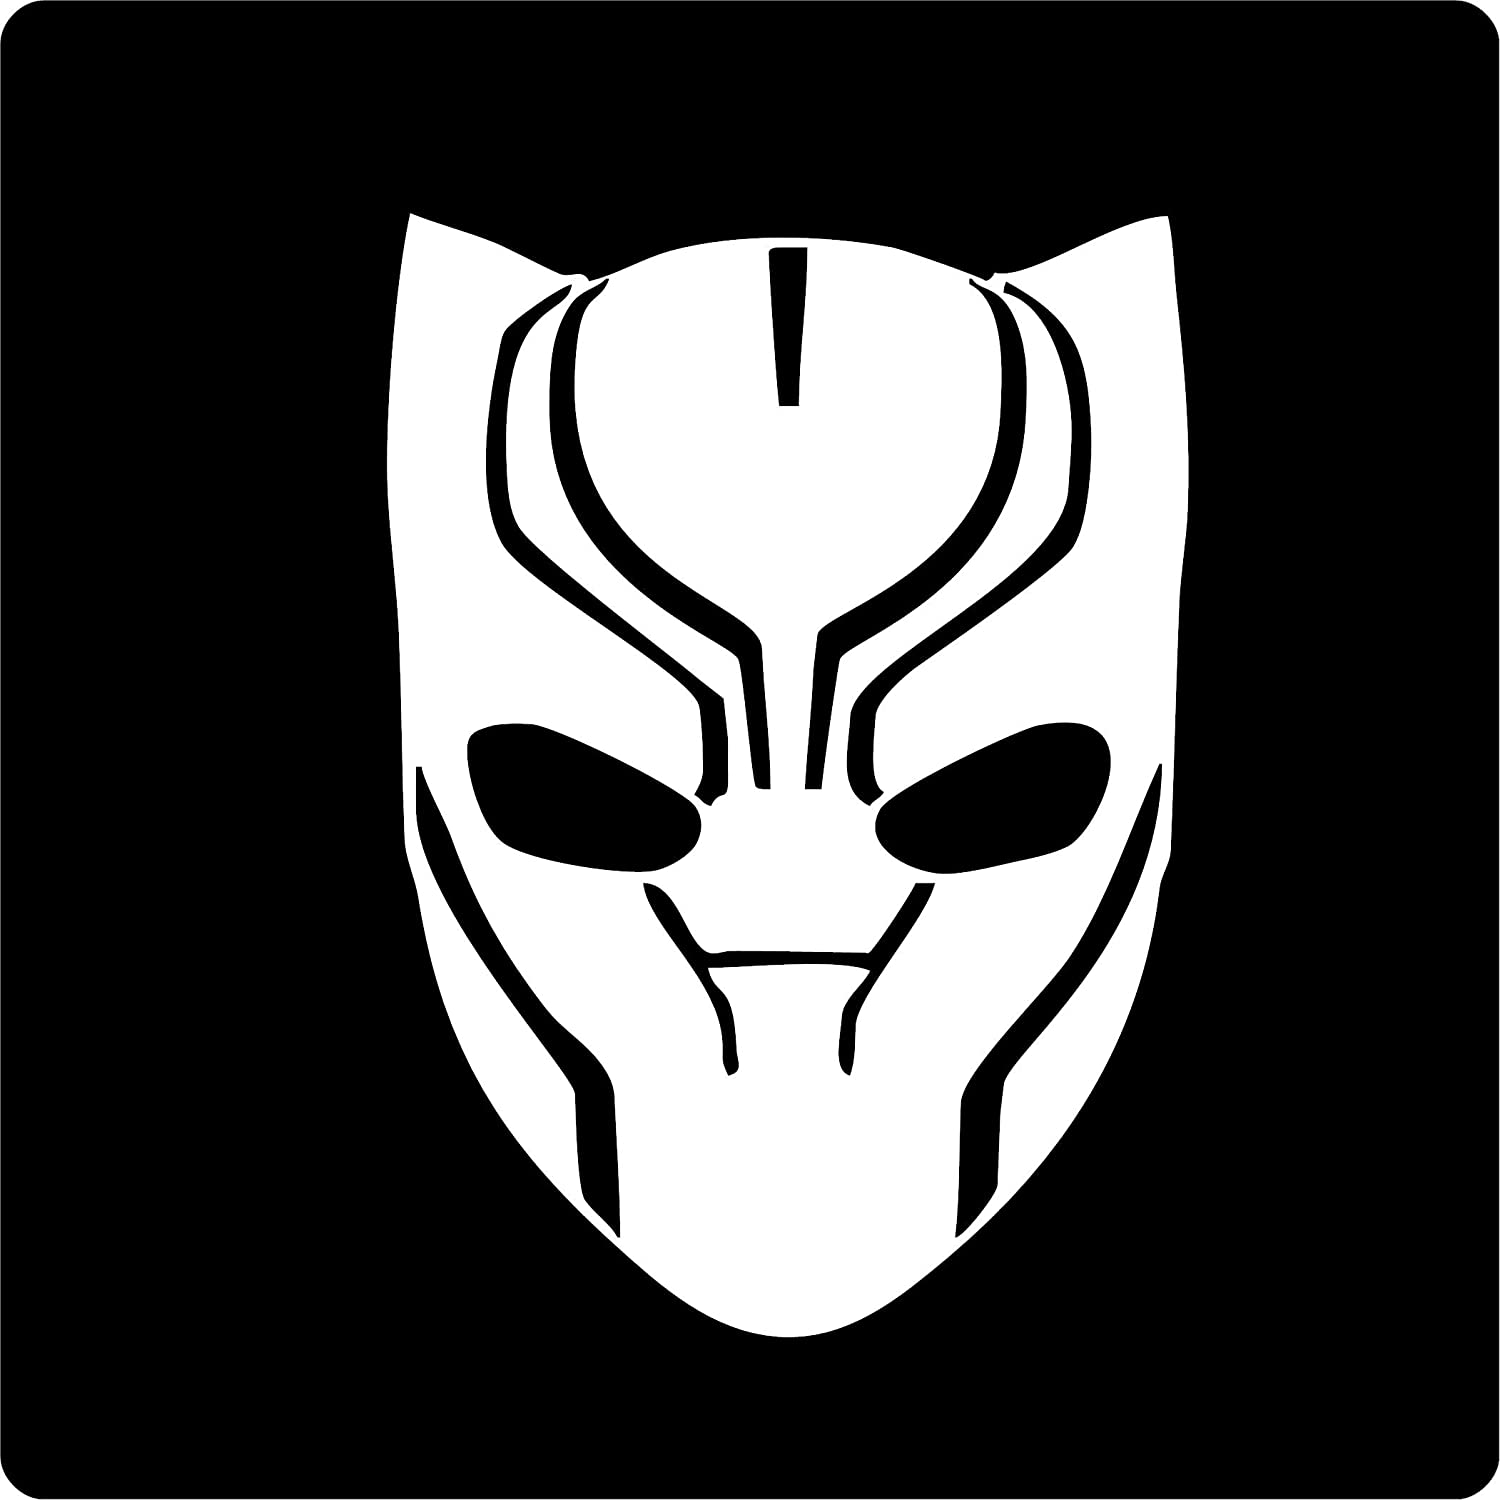 All about families marvel comics advengers black panther mask die cut decal sticker for tuck car windows laptop phone case bumper yeti cup mugs helmet car